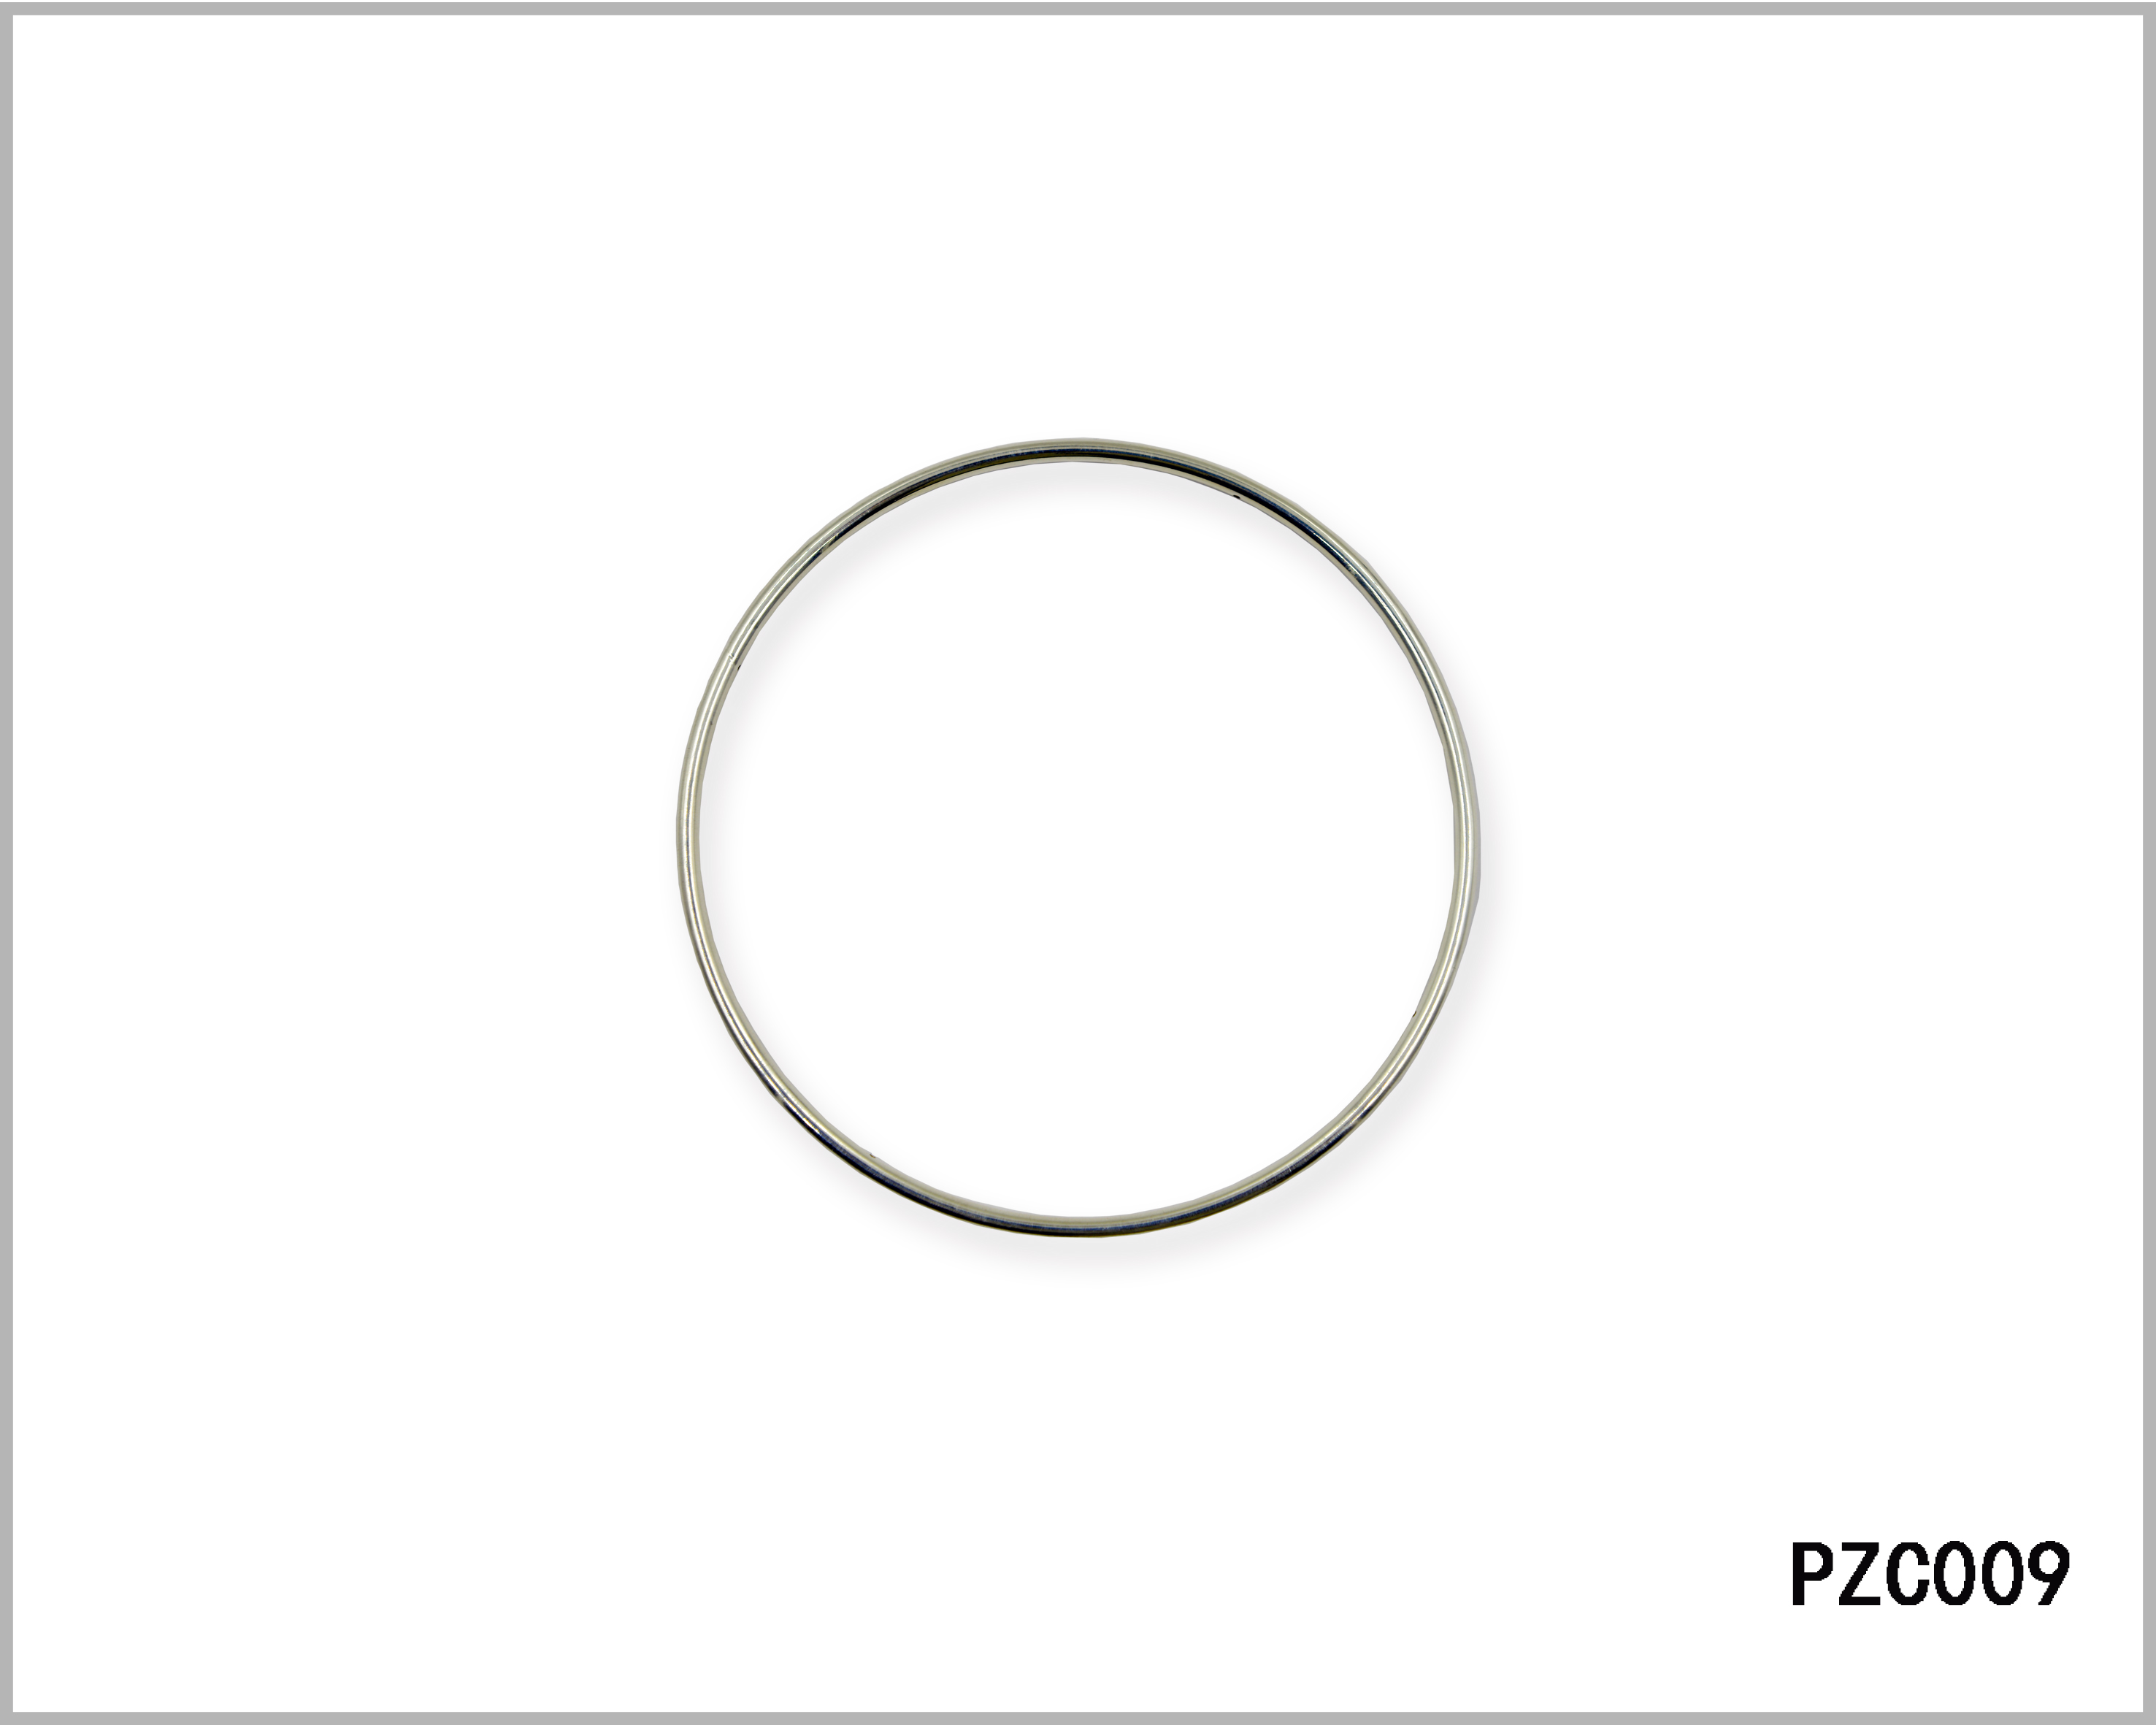 Metal O-ring-Pressurized Consistometer